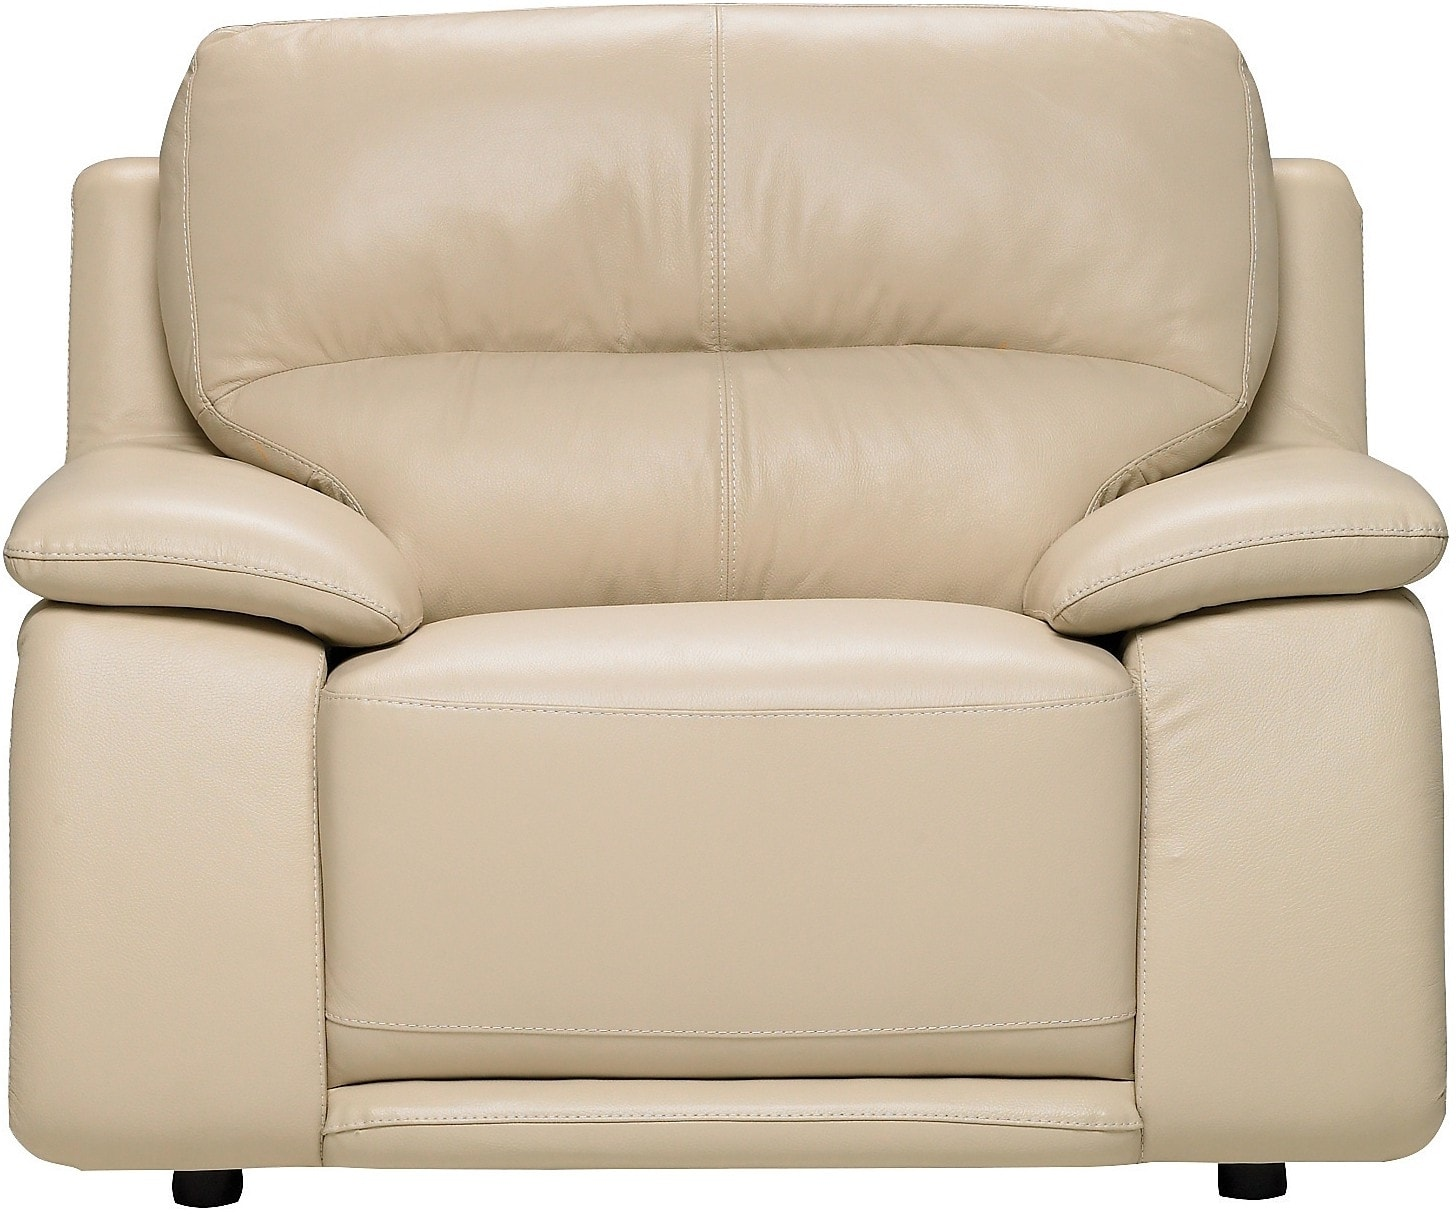 Chateau d'Ax 100% Genuine Leather Chair - Ivory